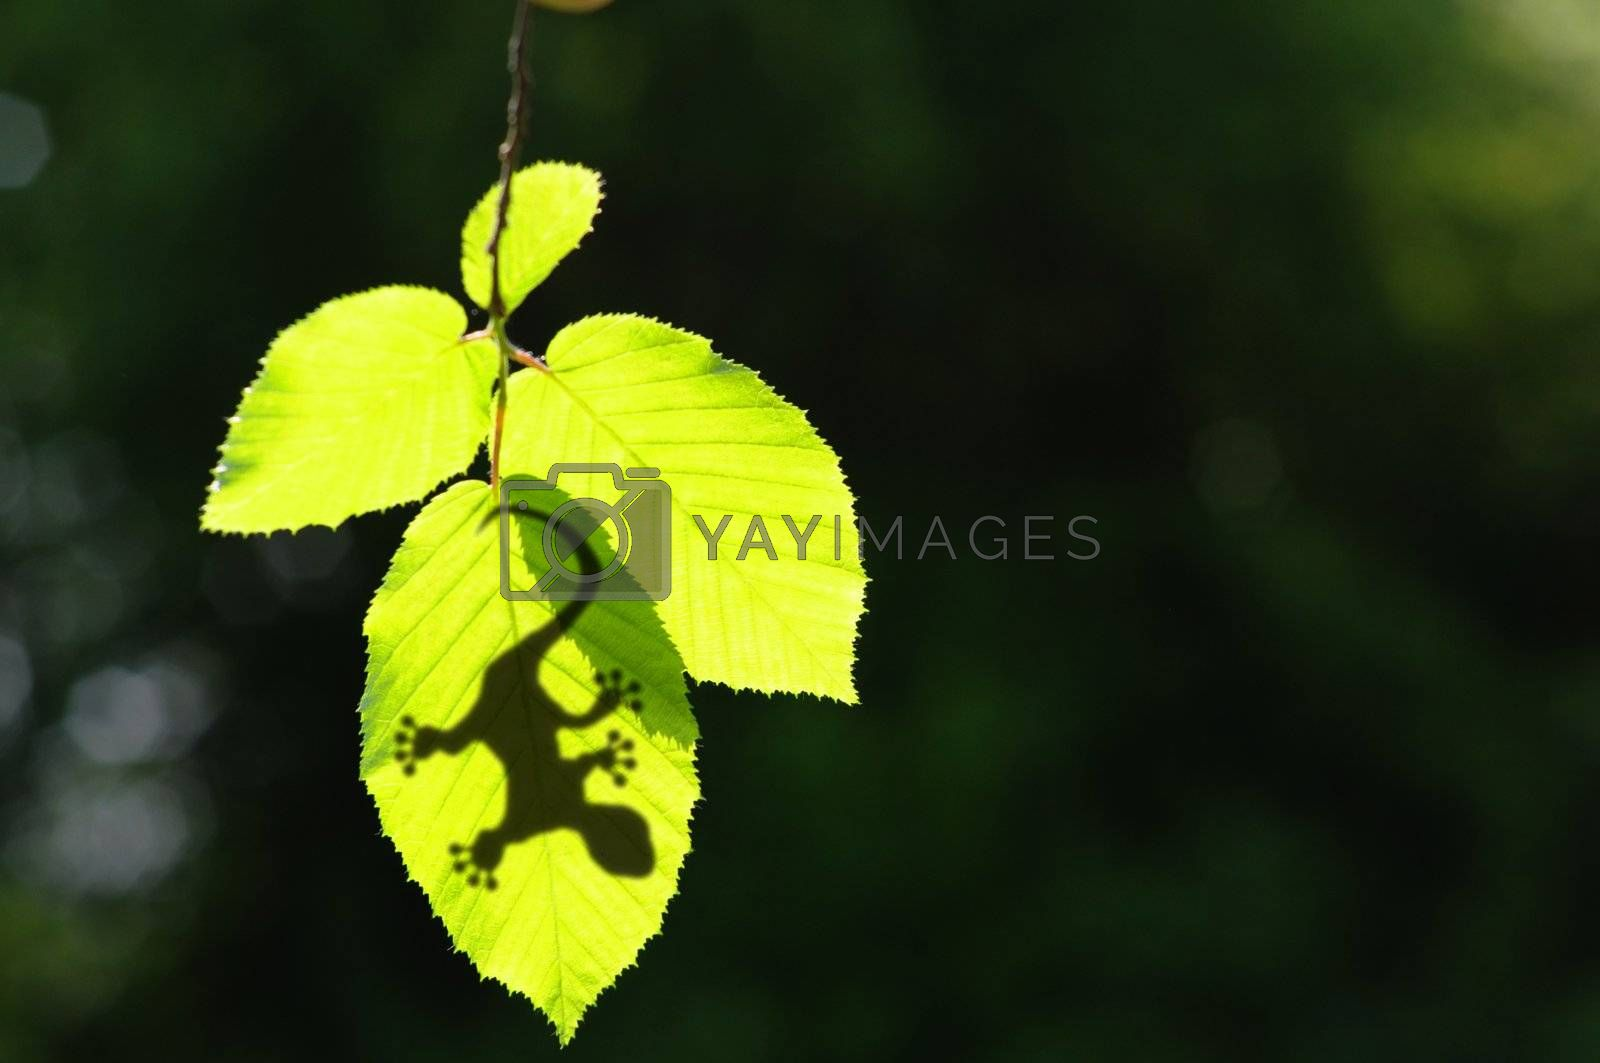 gecko shadow on green leaf texture showing nature concept with copyspace